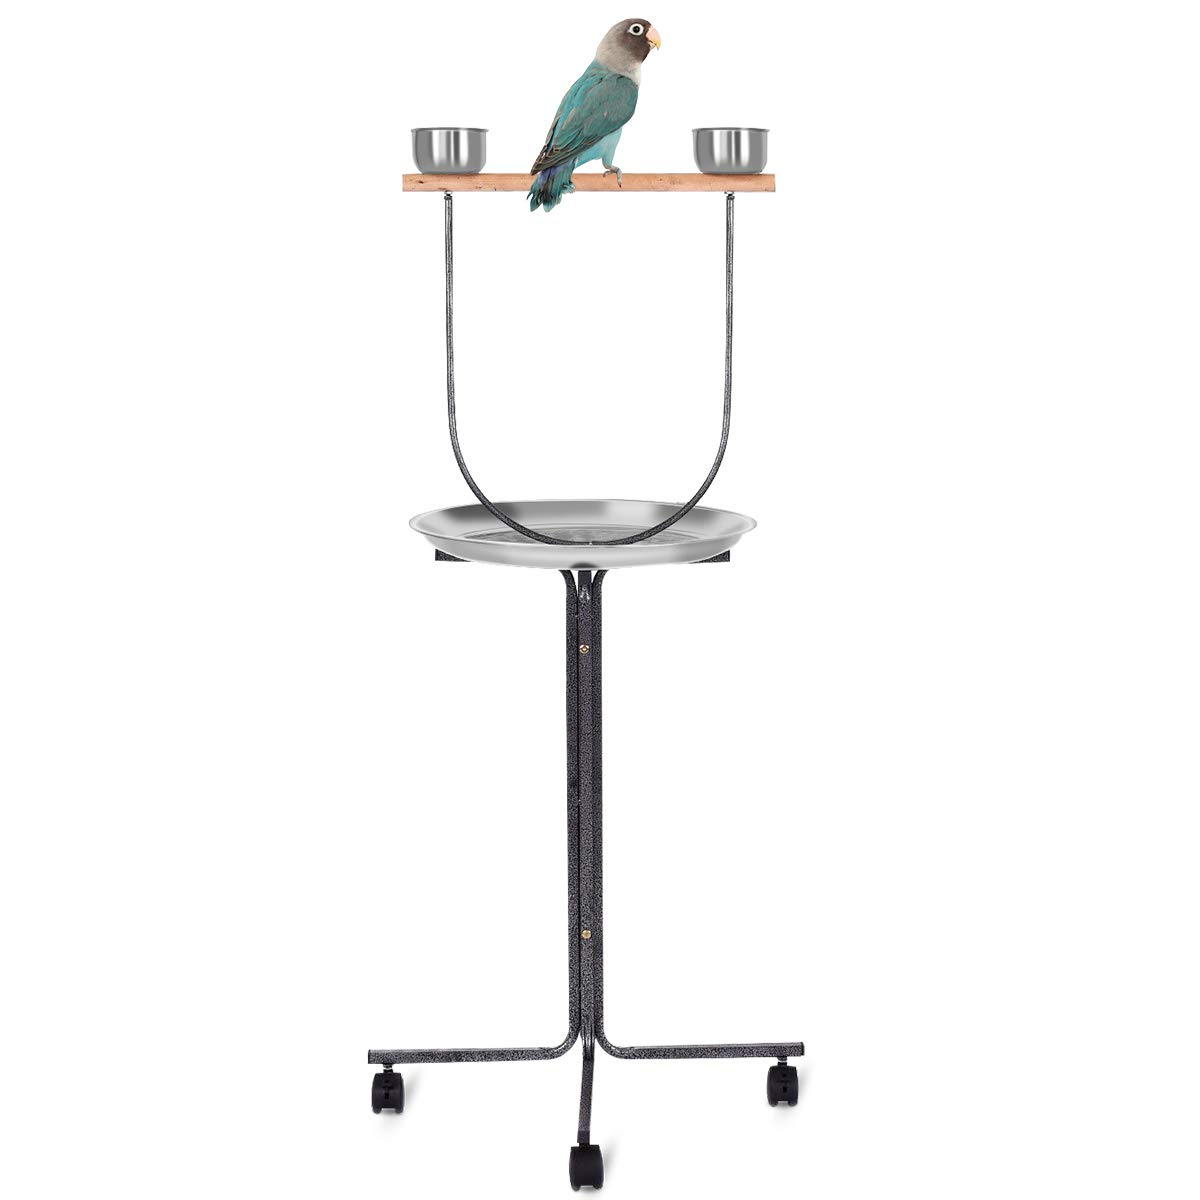 PETSJOY Bird Perch Stand Stainless Steel Parrot Training Perch Stand with Feeding Bowls & Potty Tray & Wheels, Large Parrot Play Stand, Height 51'' Inch by PETSJOY